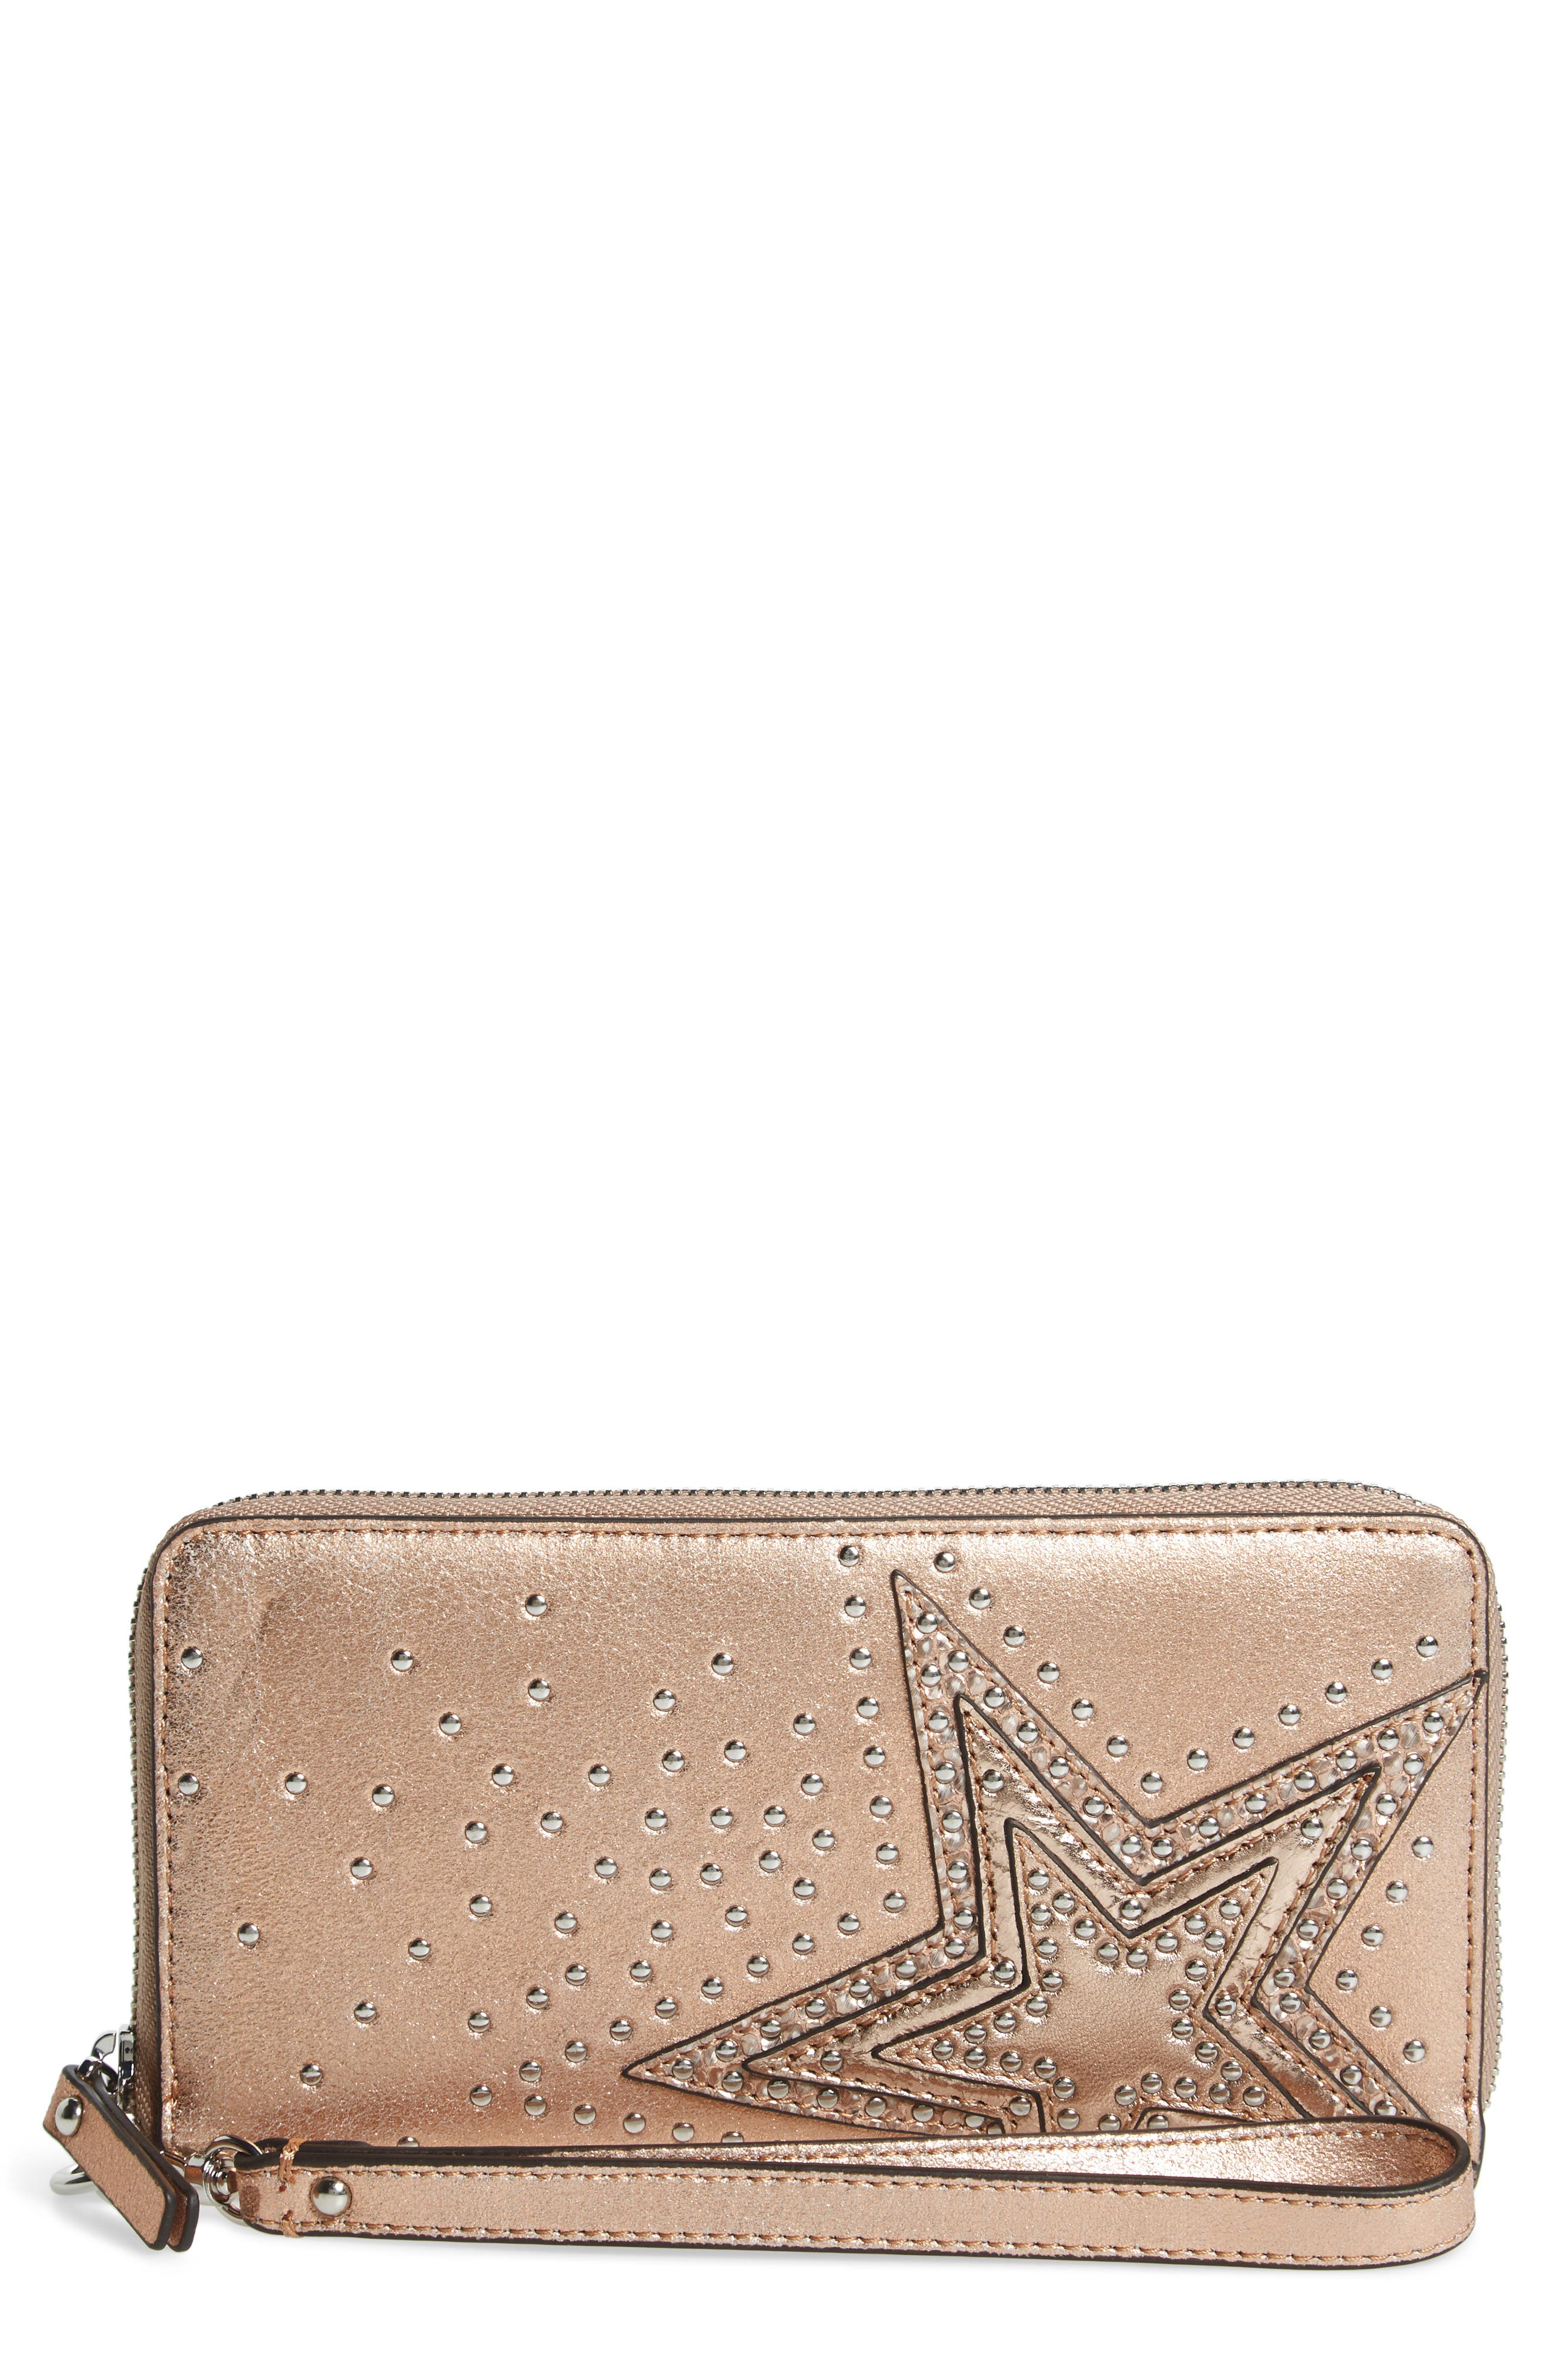 Taz Leather Zip Around Wallet,                         Main,                         color, ROSE GOLD